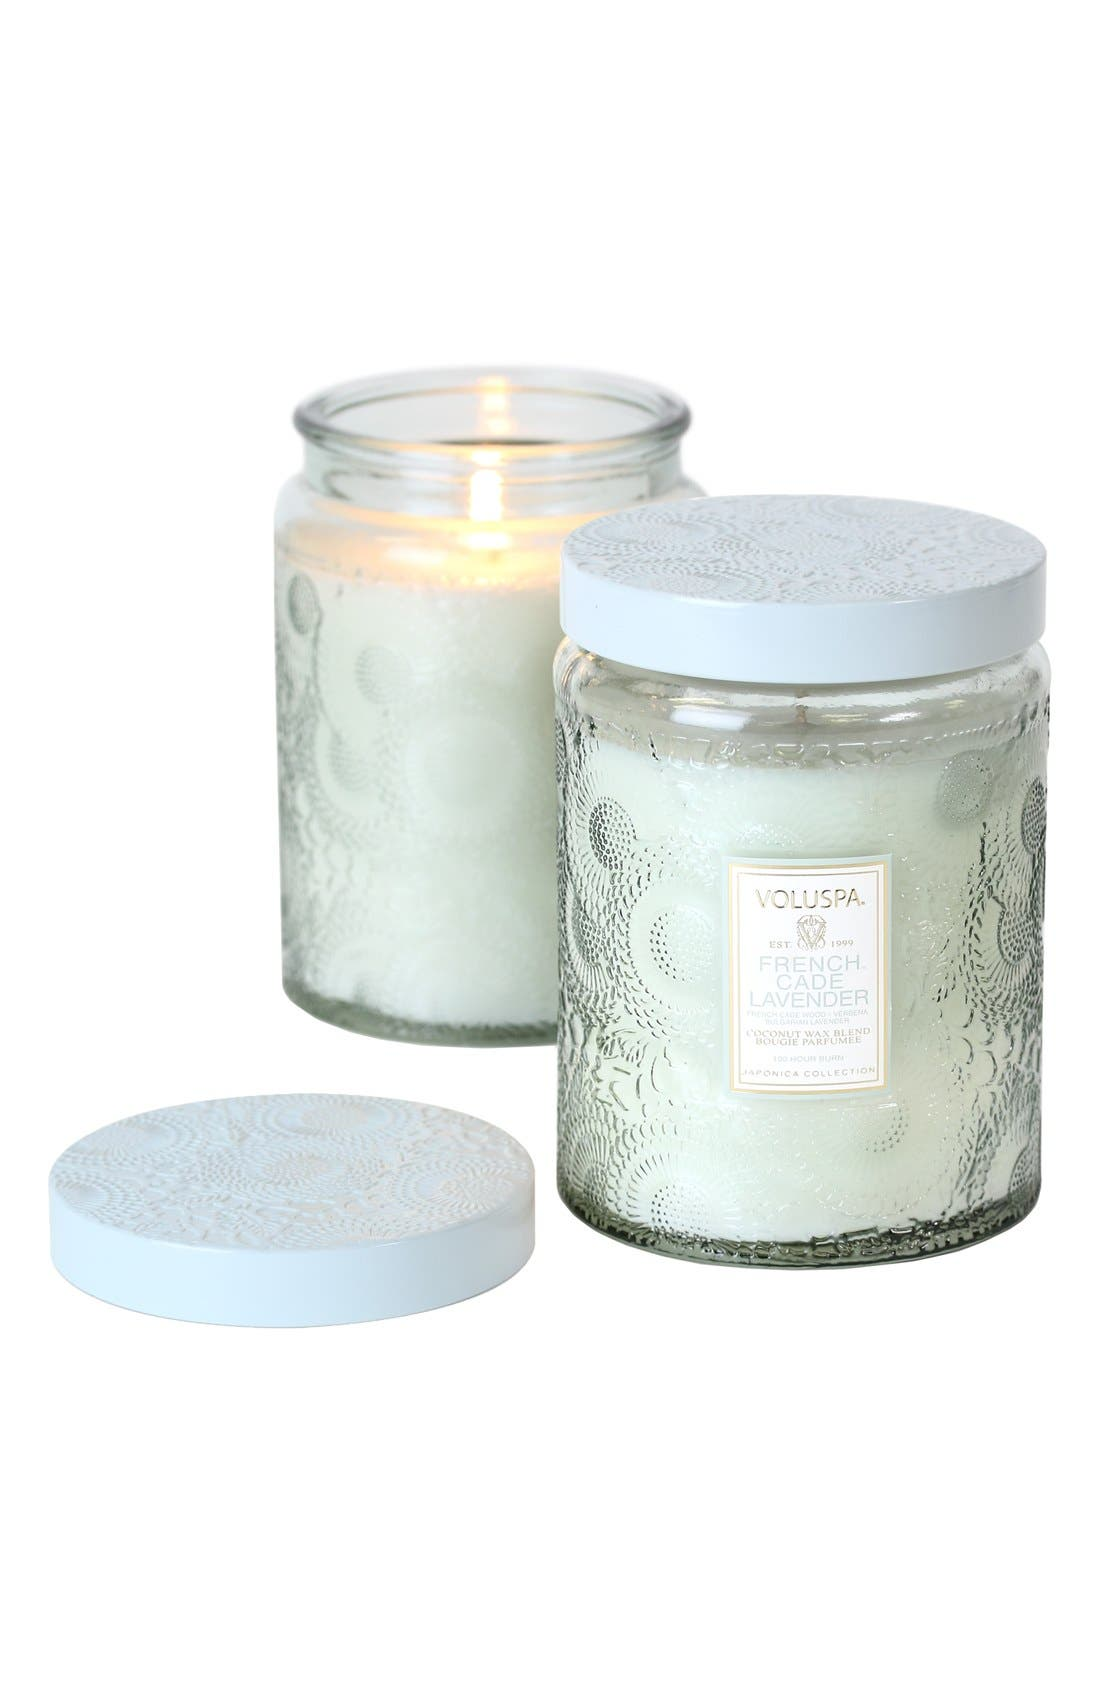 Japonica French Cade Lavender Large Embossed Jar Candle,                             Main thumbnail 1, color,                             000